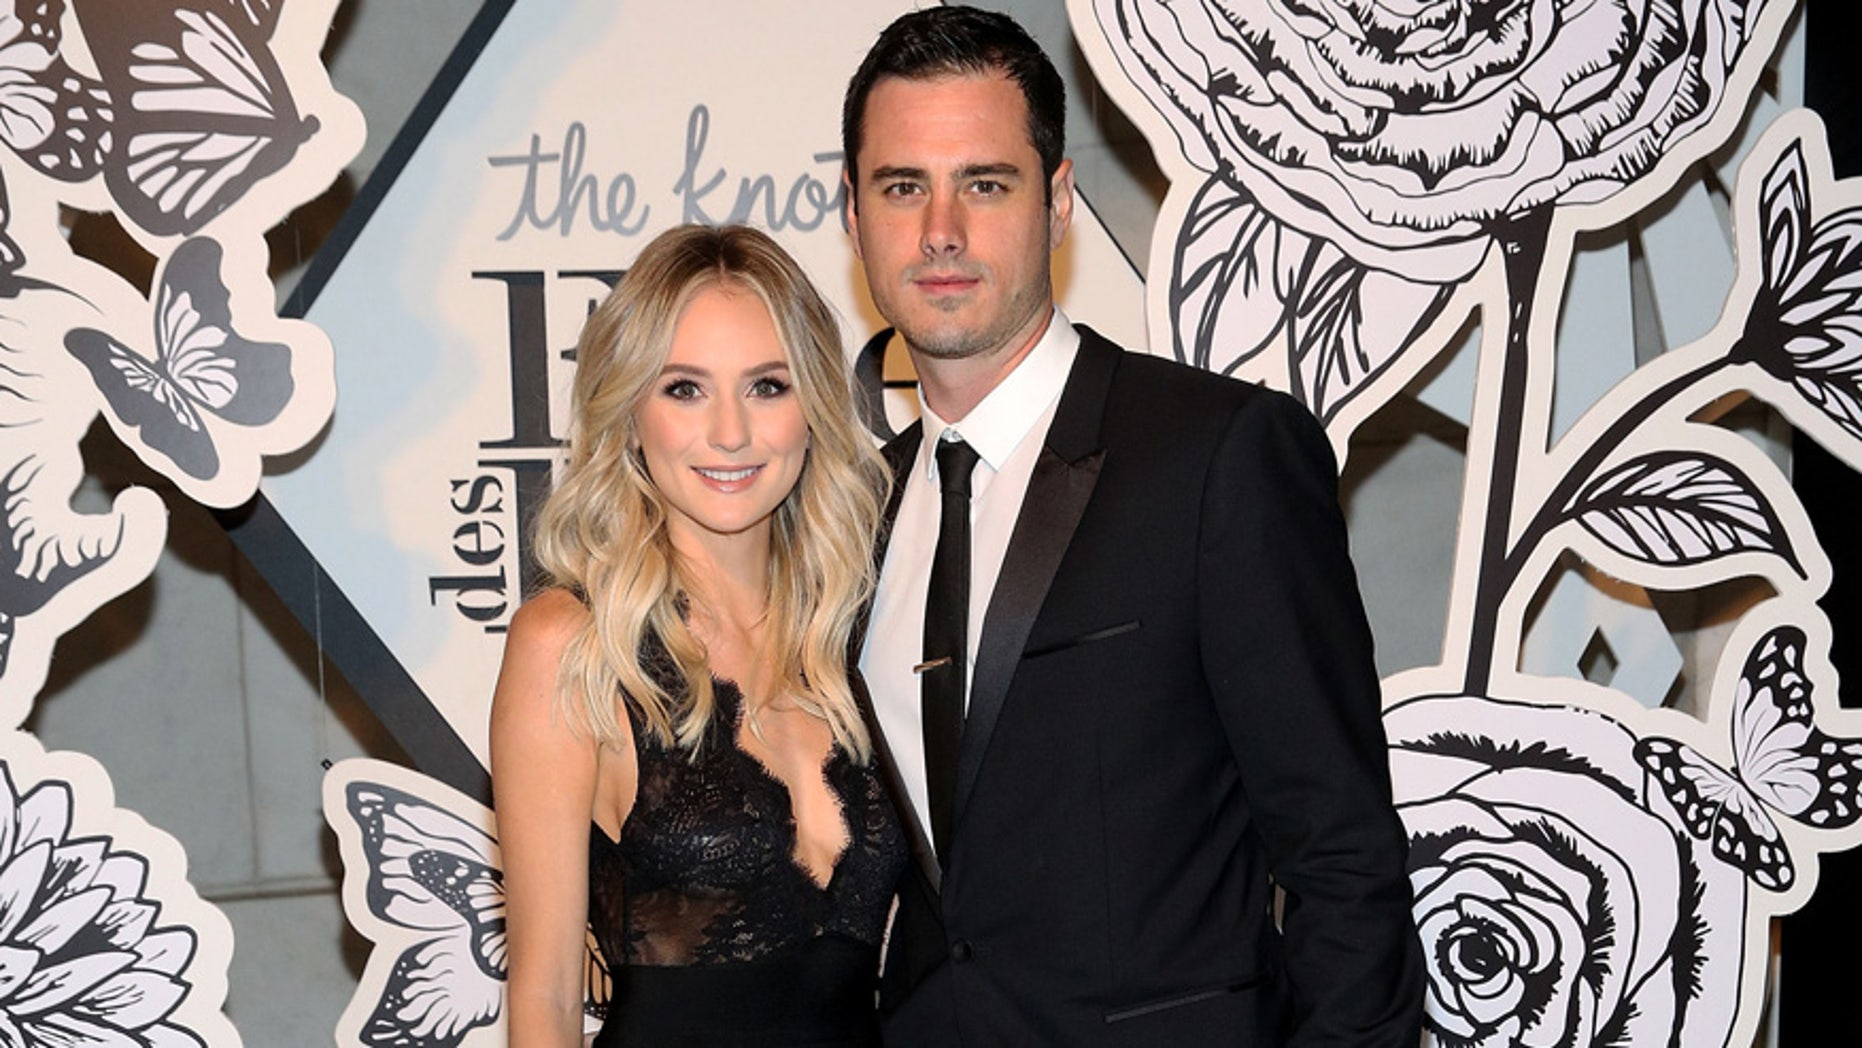 Lauren Bushnell and Ben Higgins attend The Knot Gala 2016 at New York Public Library on October 10, 2016 in New York City.